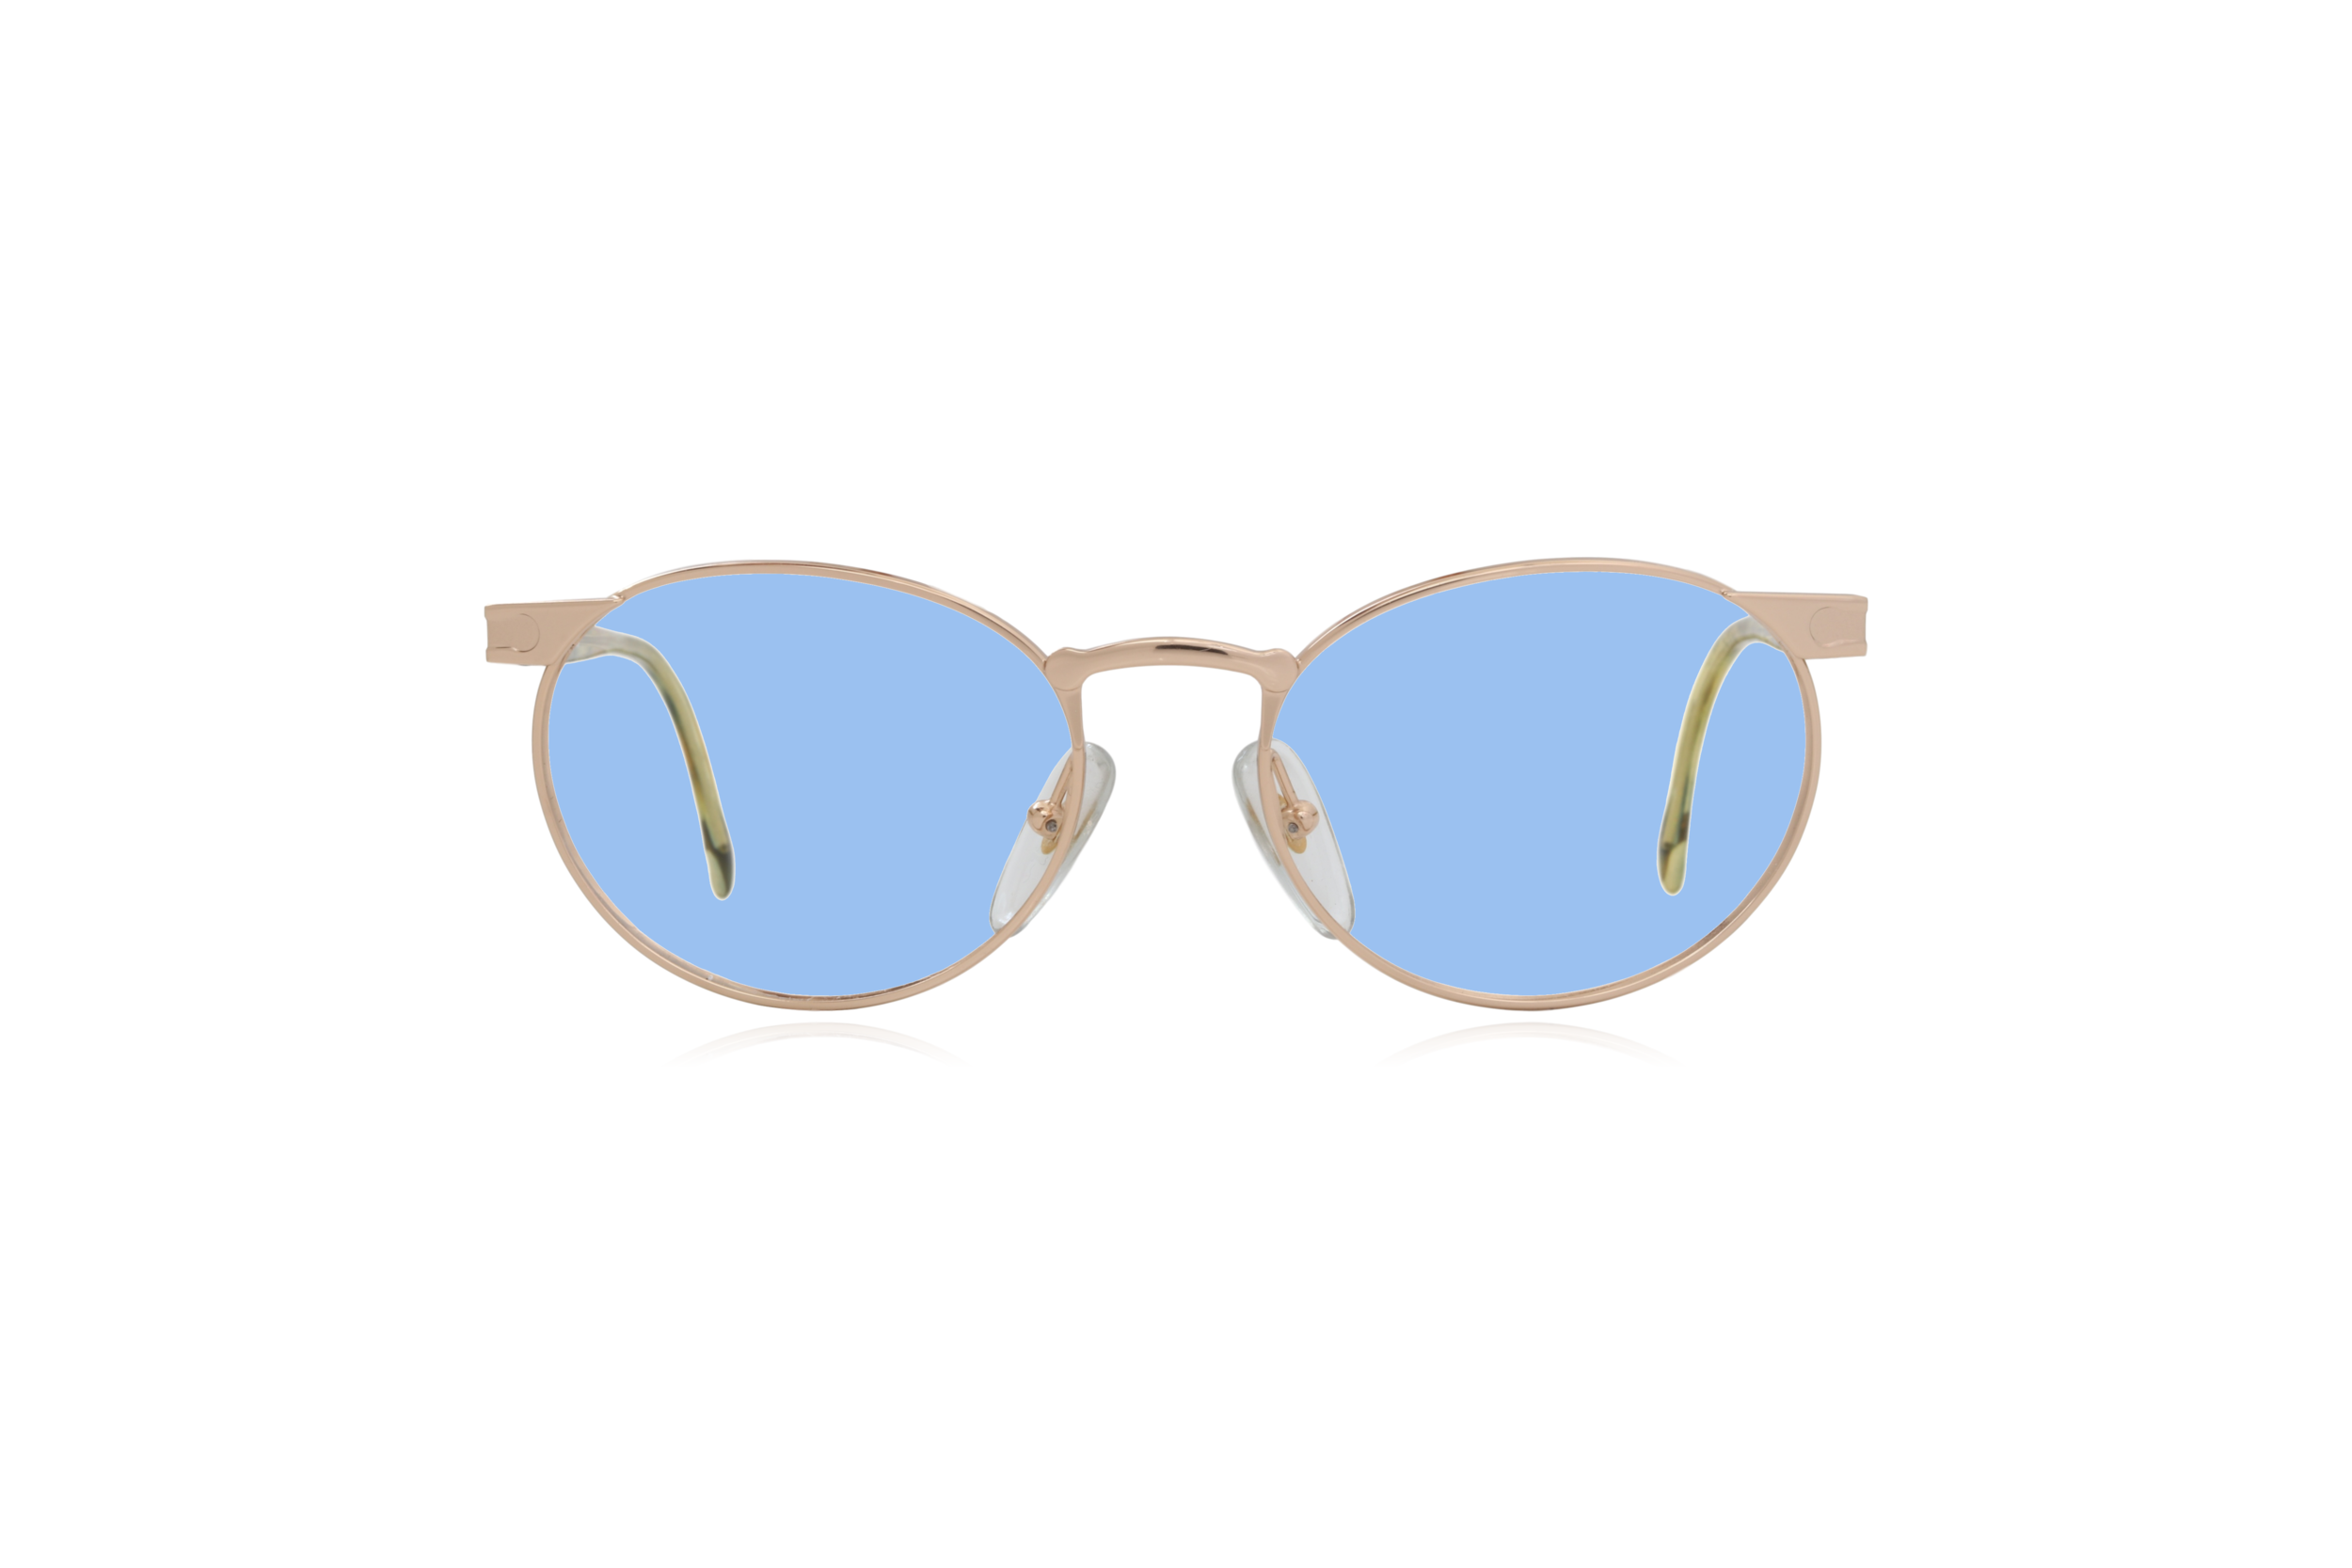 Peep Eyewear, Vintage Glasses, Hugo Boss 5131, Carrera, Blue Lenses.png